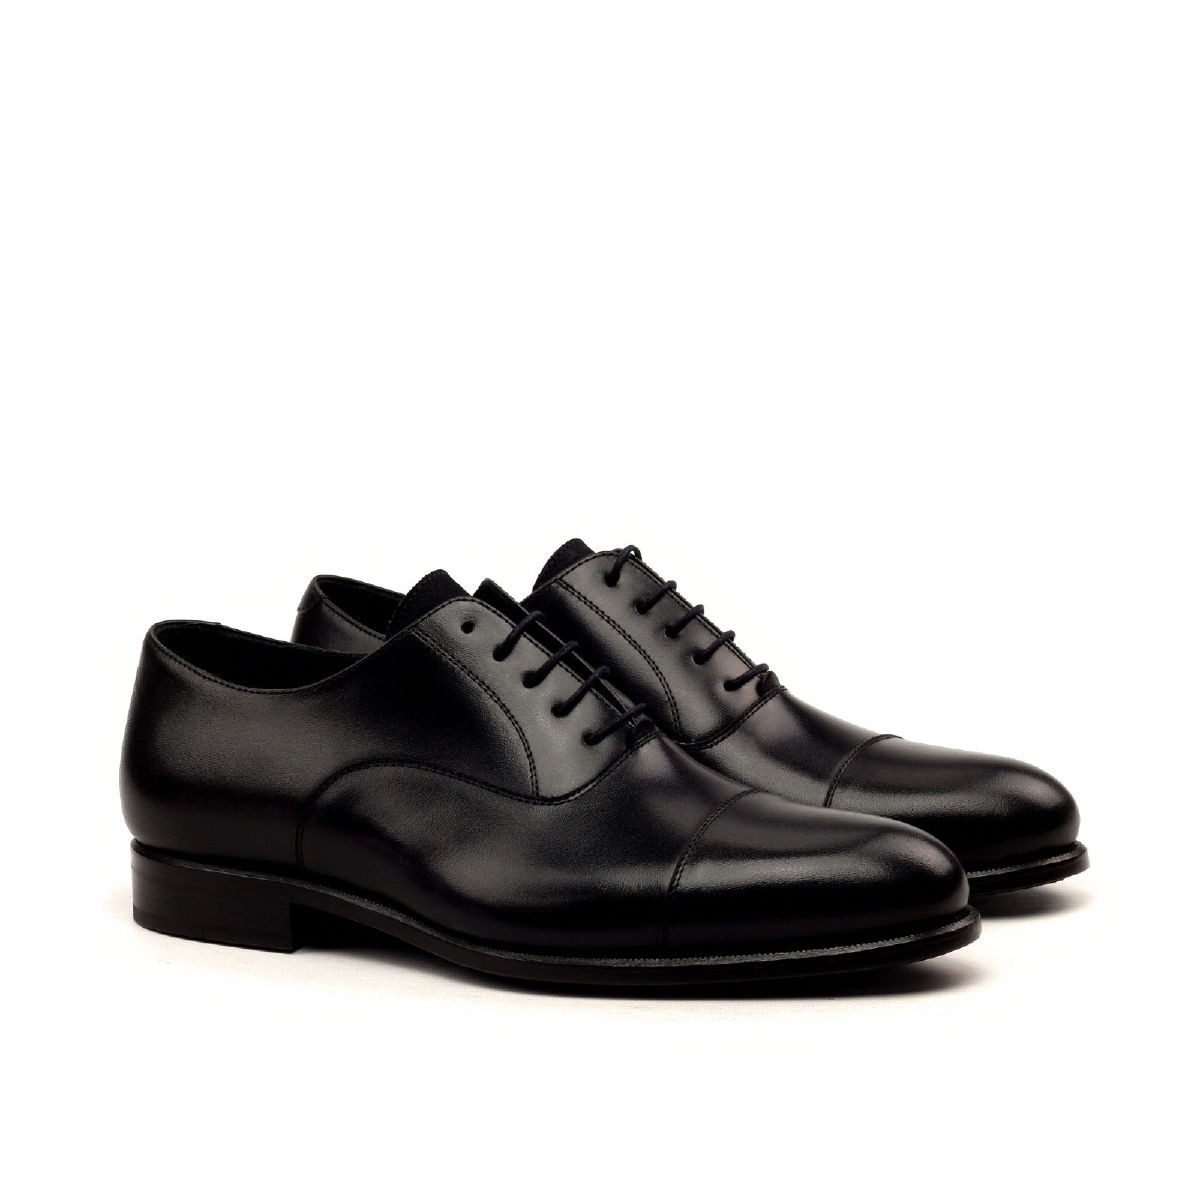 Black Calf Captoe Oxford